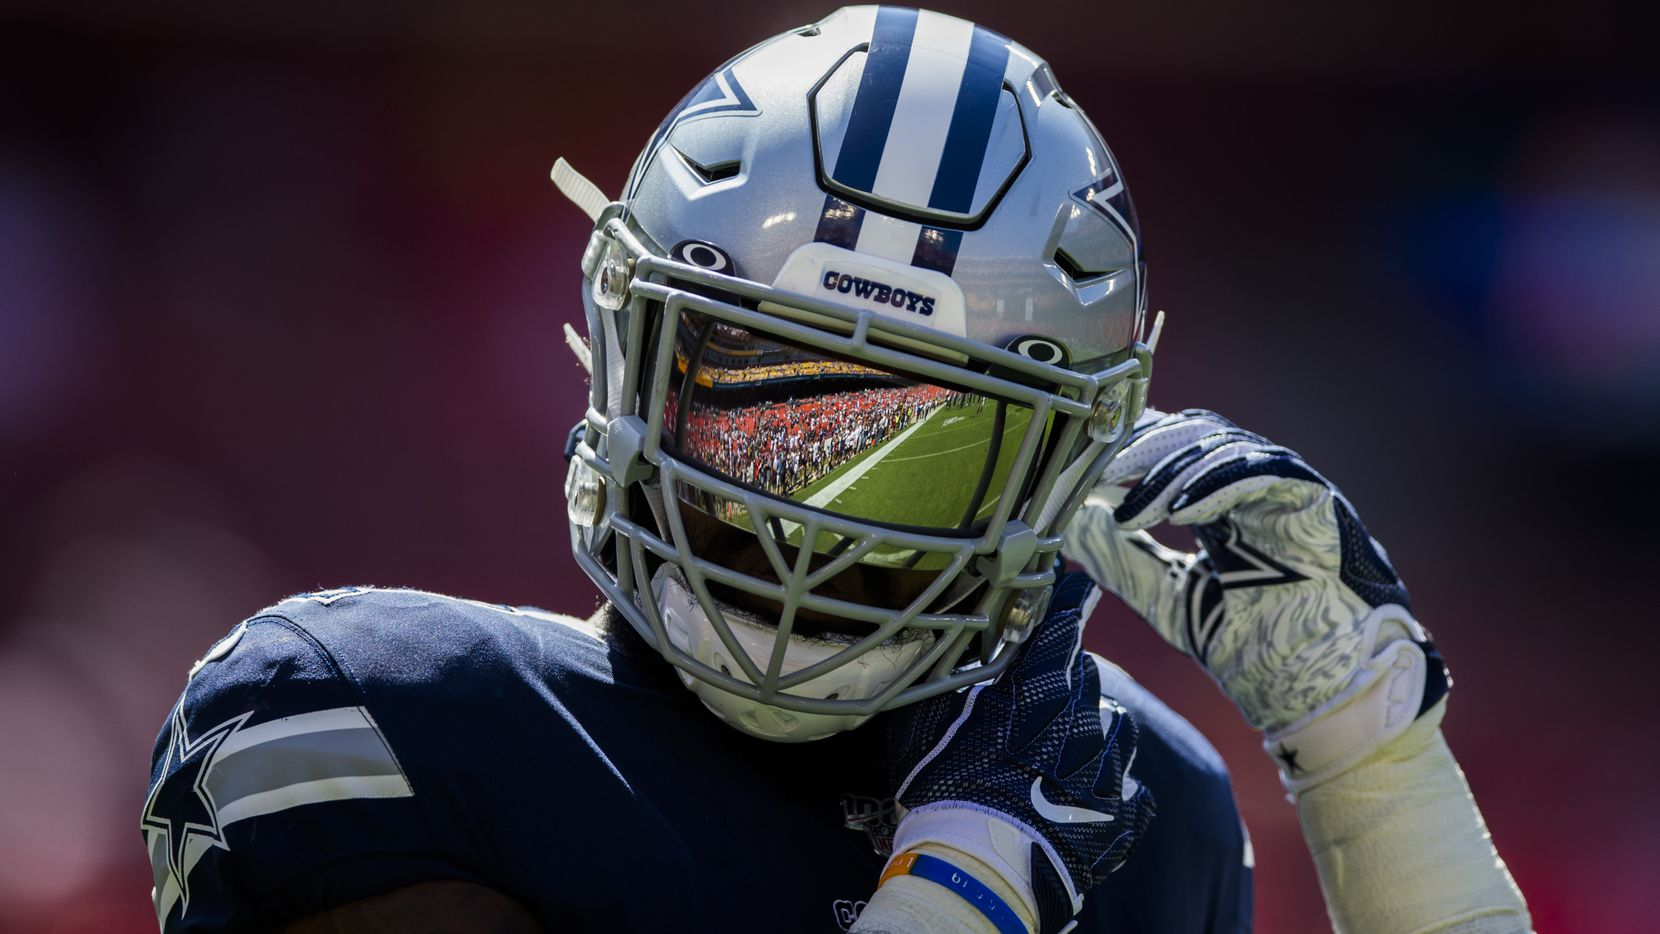 Dallas Cowboys running back Ezekiel Elliott (21) has the field reflected in his helmet as he warms up before an NFL game between the Dallas Cowboys and the Washington Redskins on Sunday, September 15, 2019 at FedExField in Landover, Maryland.